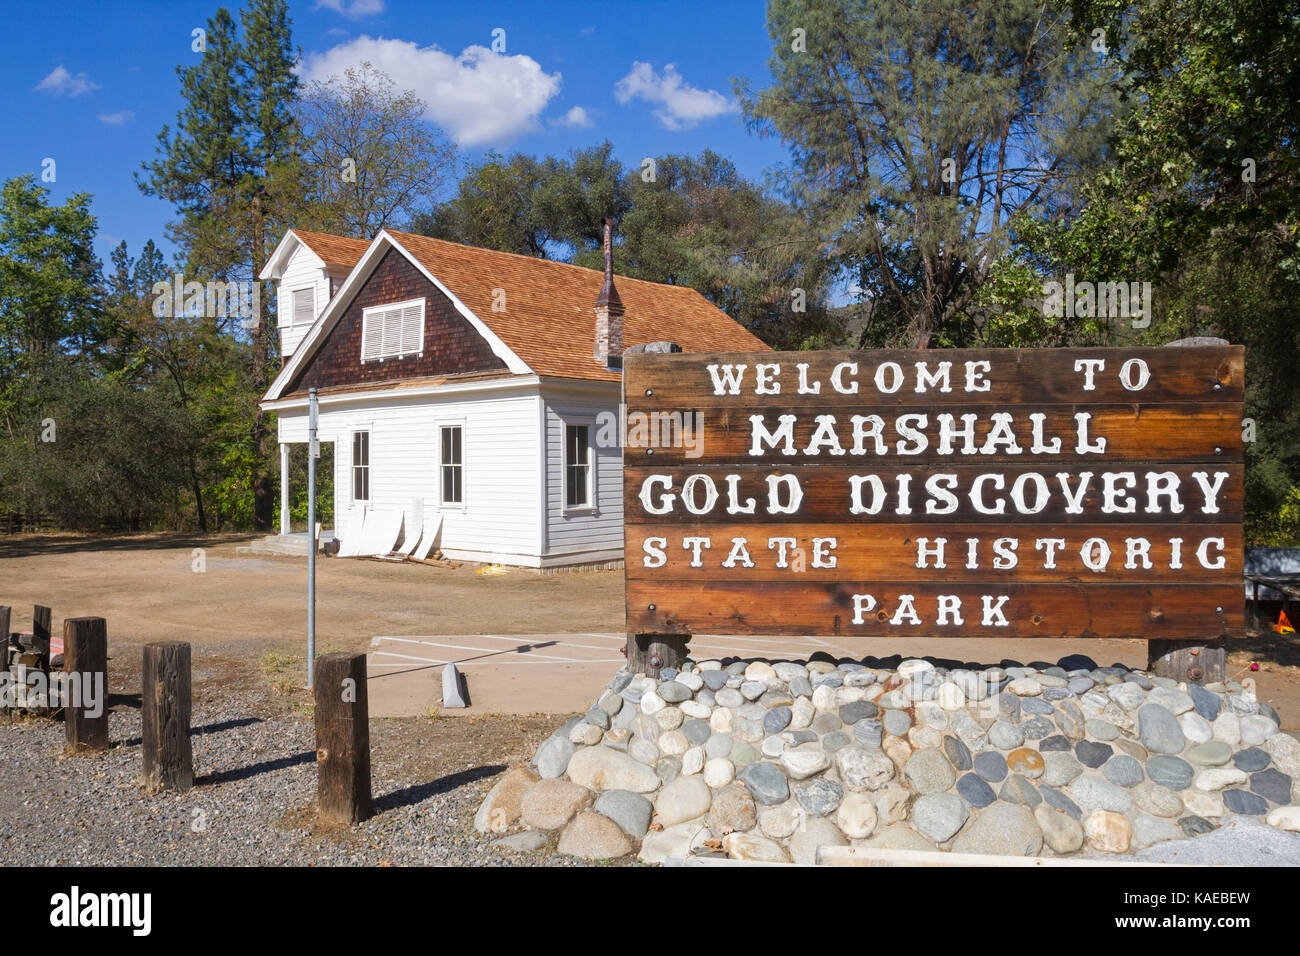 USA, California, Coloma,  Marshall Gold Discovery State Historic Park - Stock Image